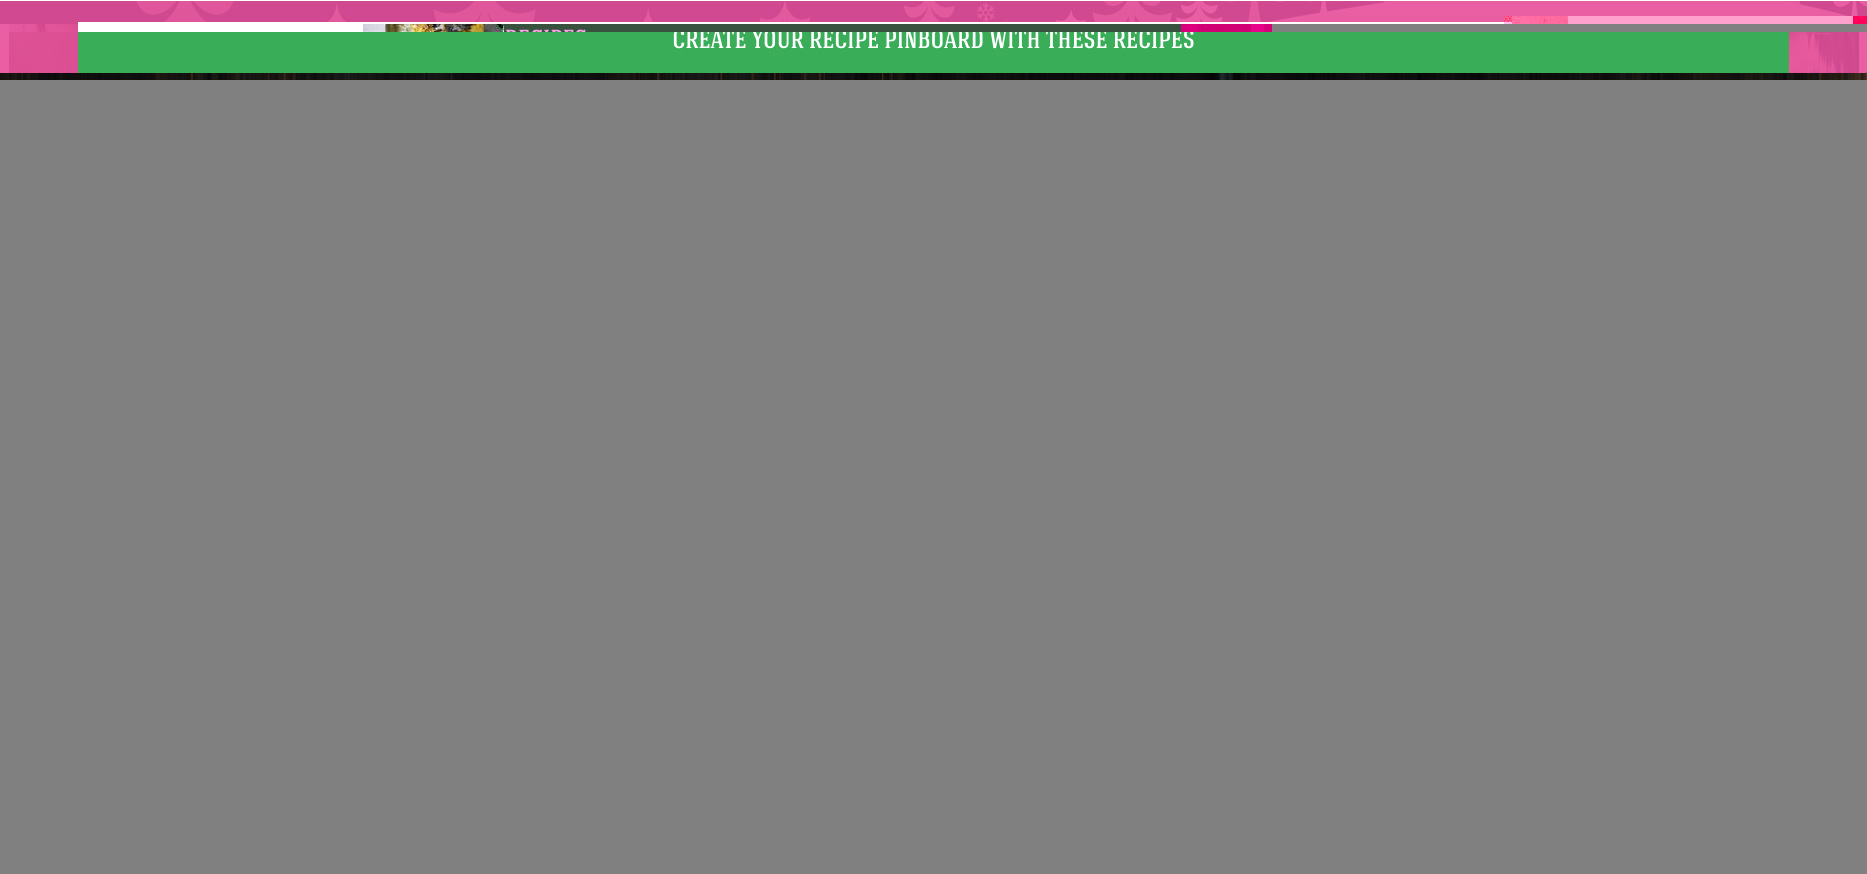 You can publish your recipe matches back to Pinterest